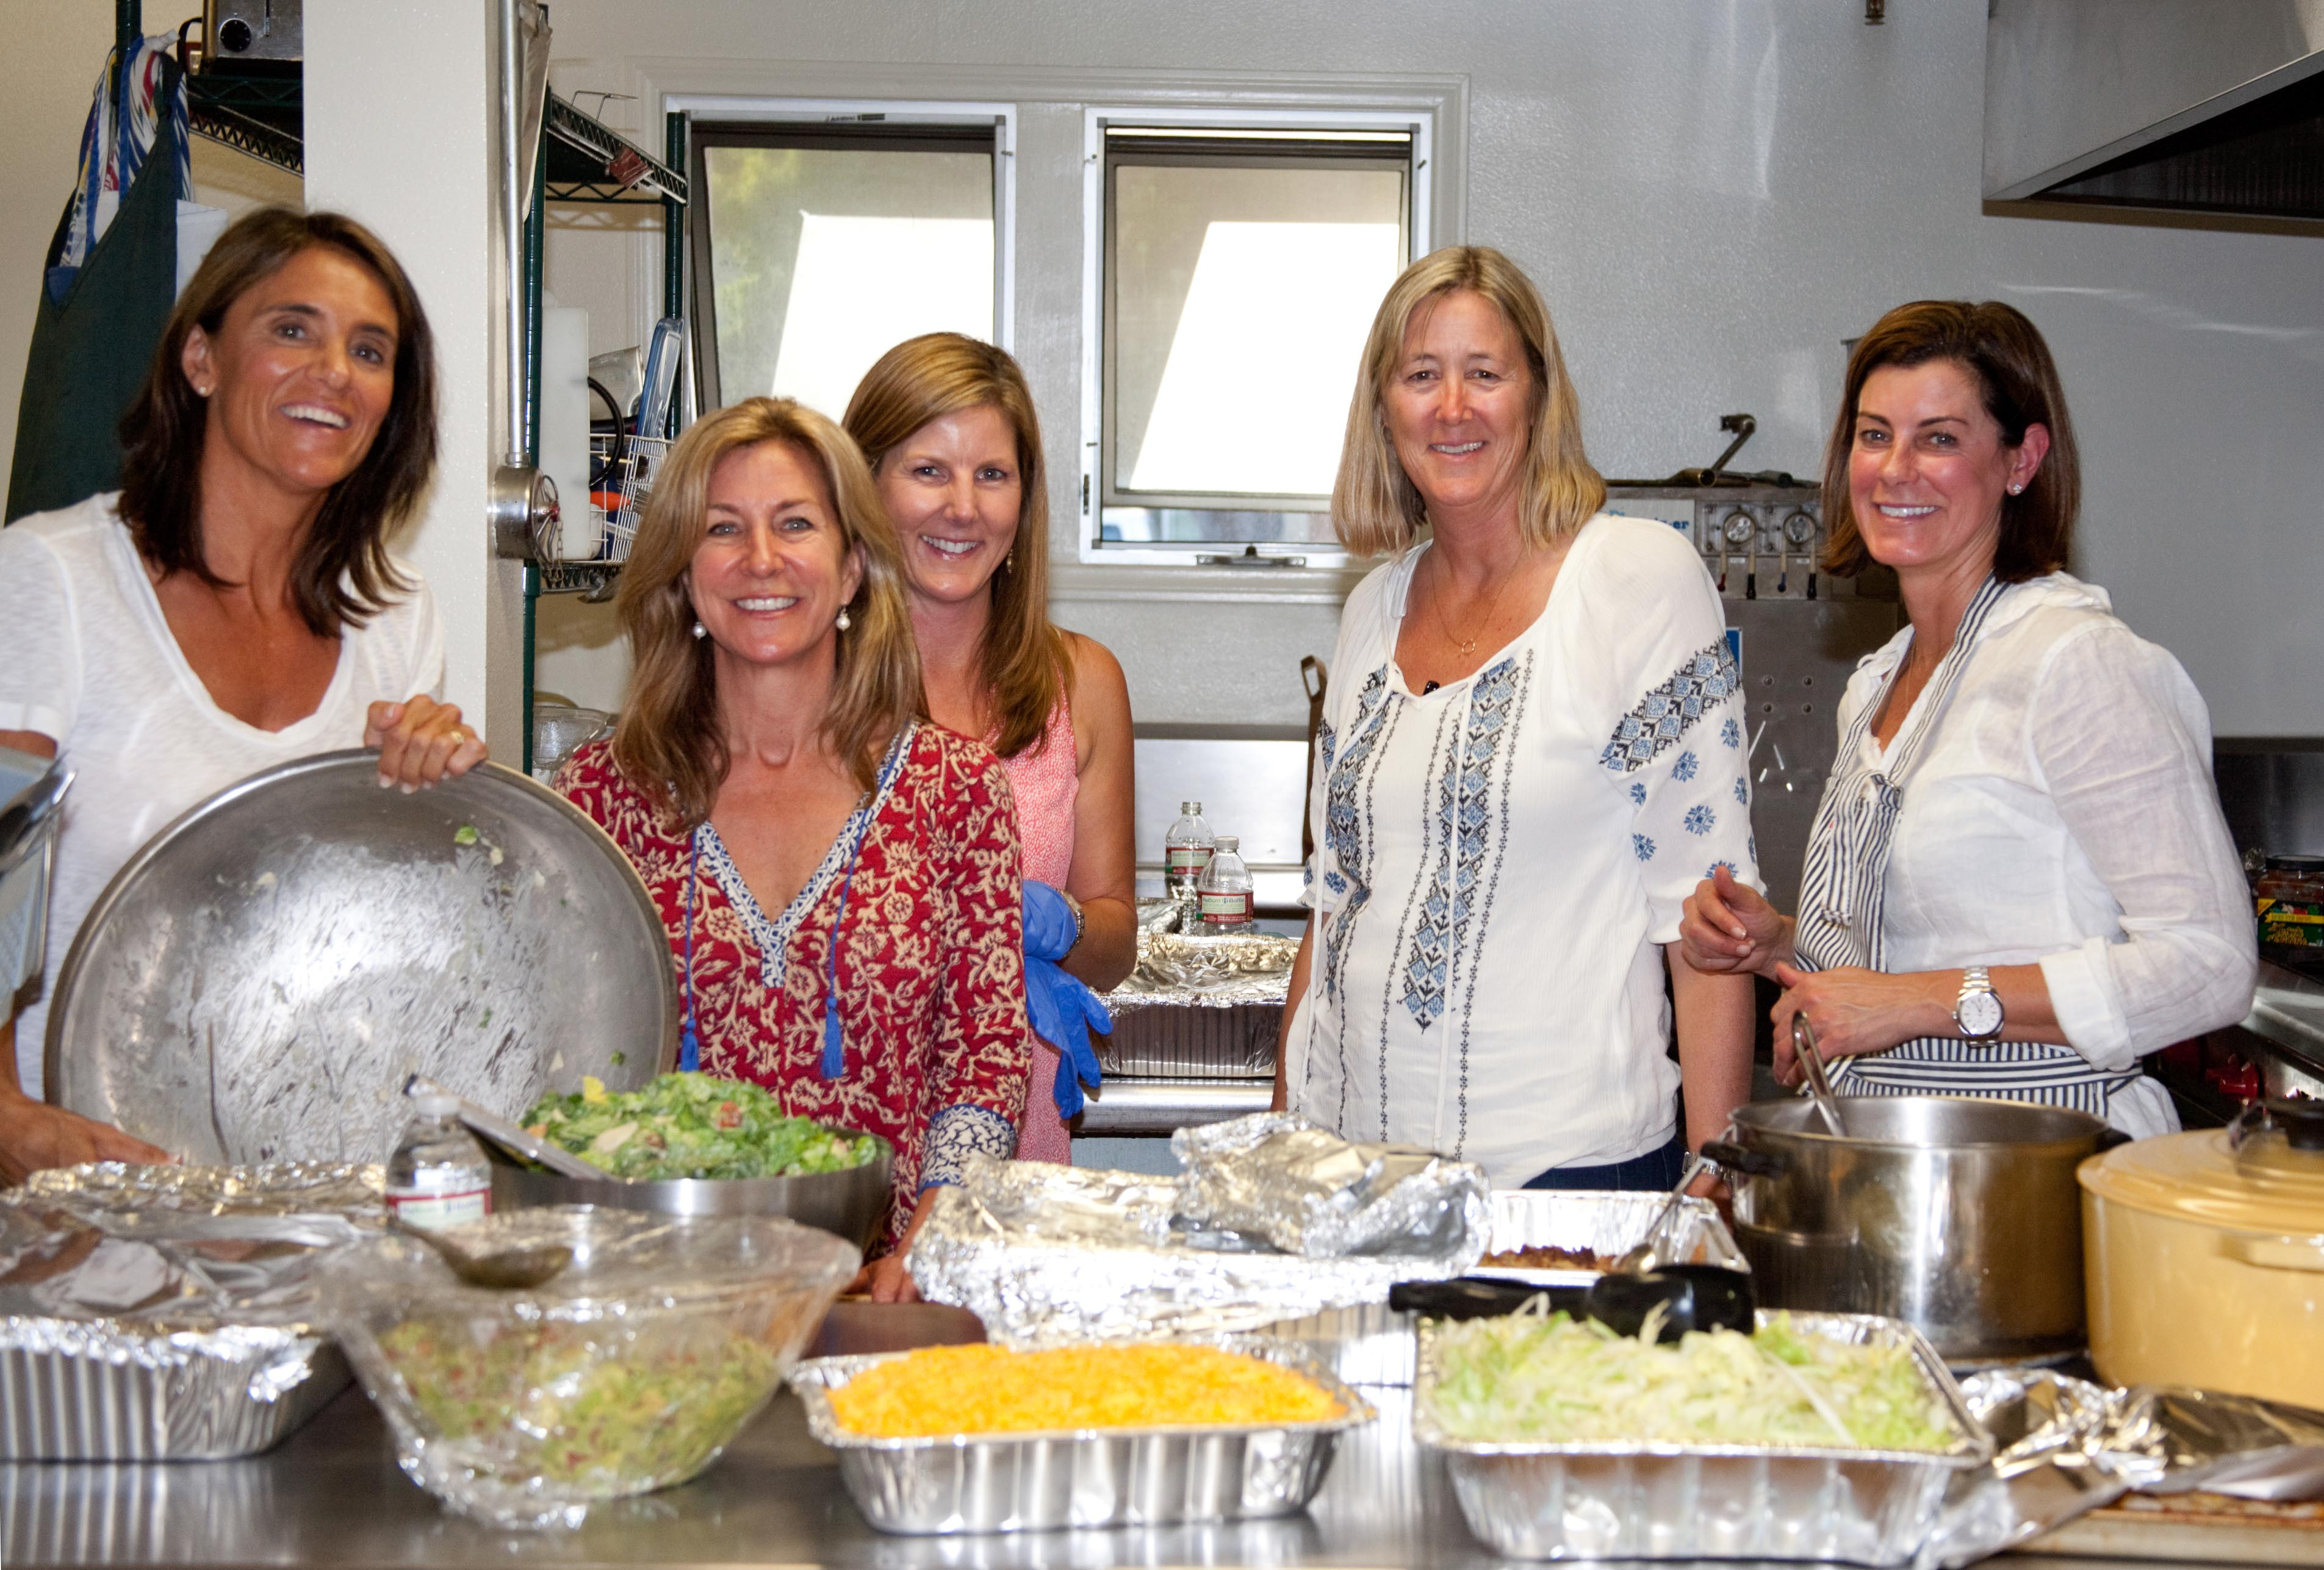 Transition House - dinner served by providers